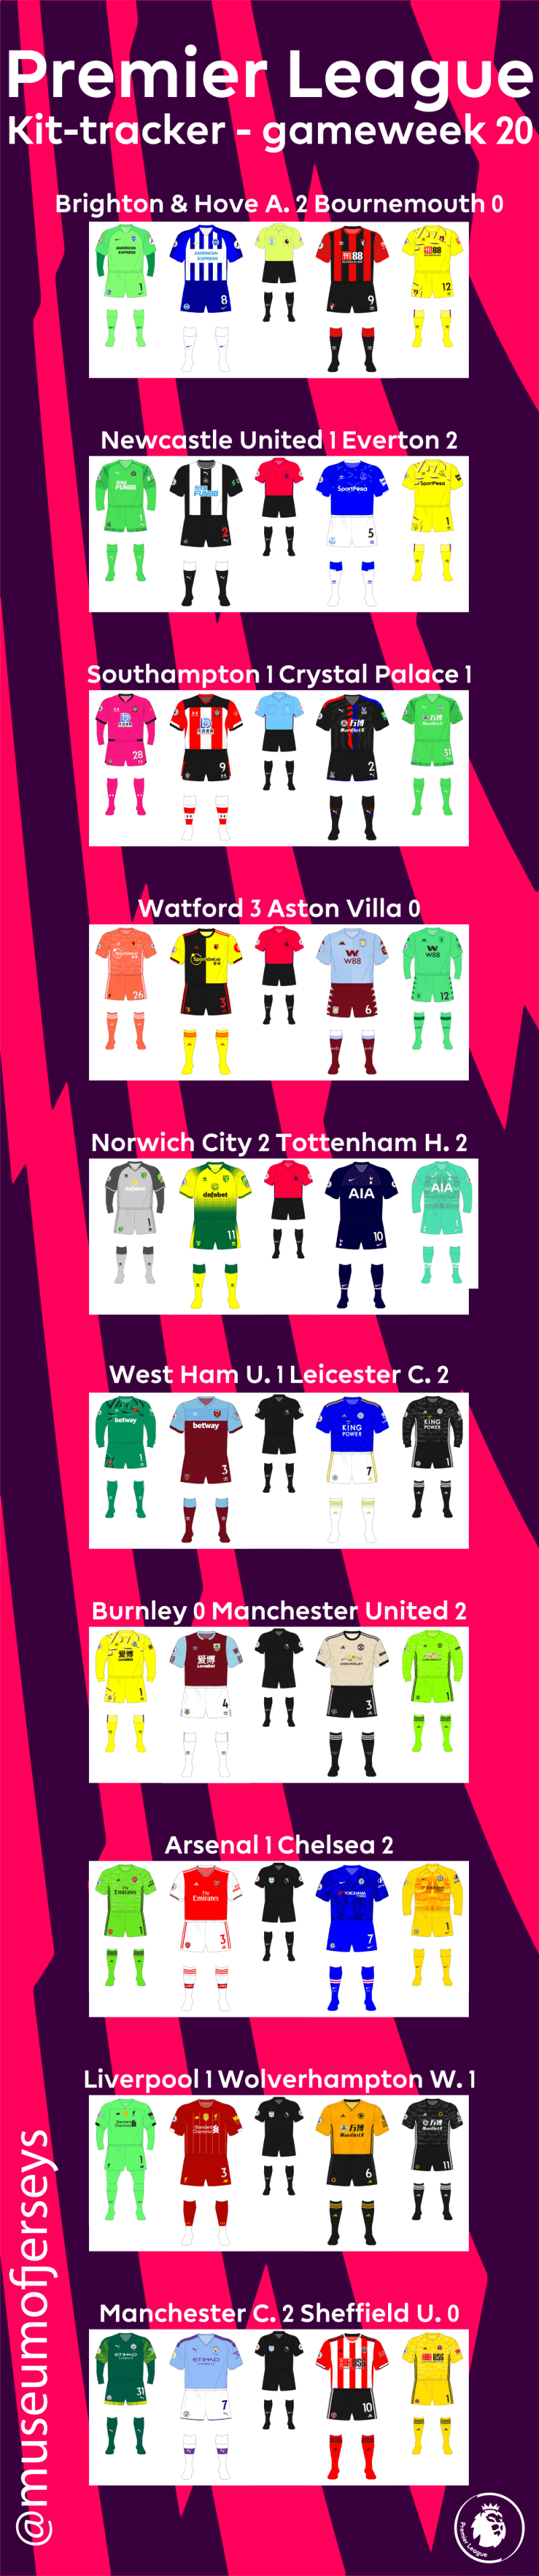 2019-2020-Premier-League-Kit-Tracker-Gameweek-20-01